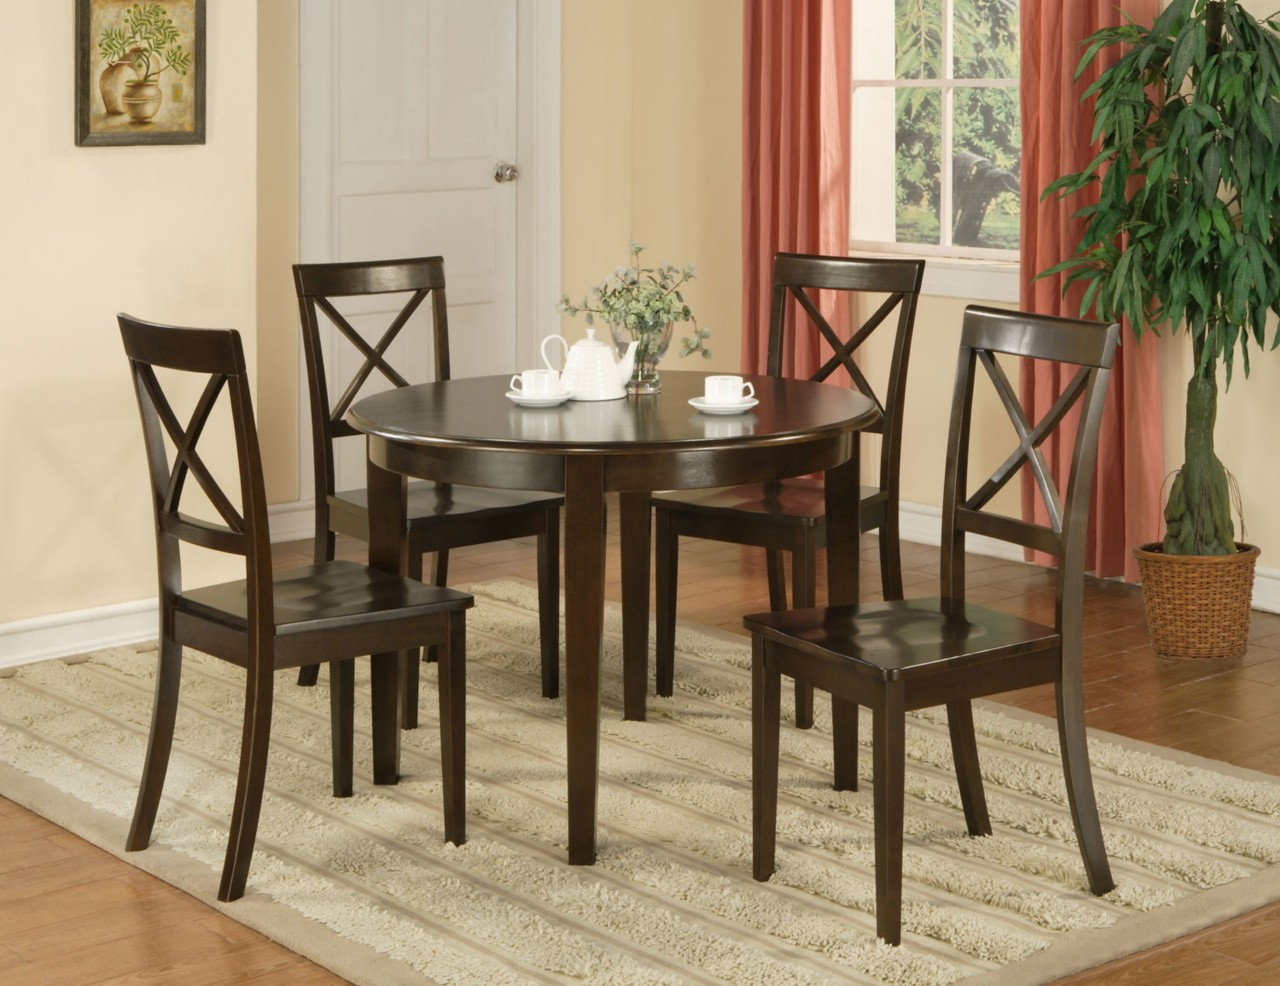 5 PC BOSTON ROUND DINETTE DINING TABLE amp 4 WOOD SEAT